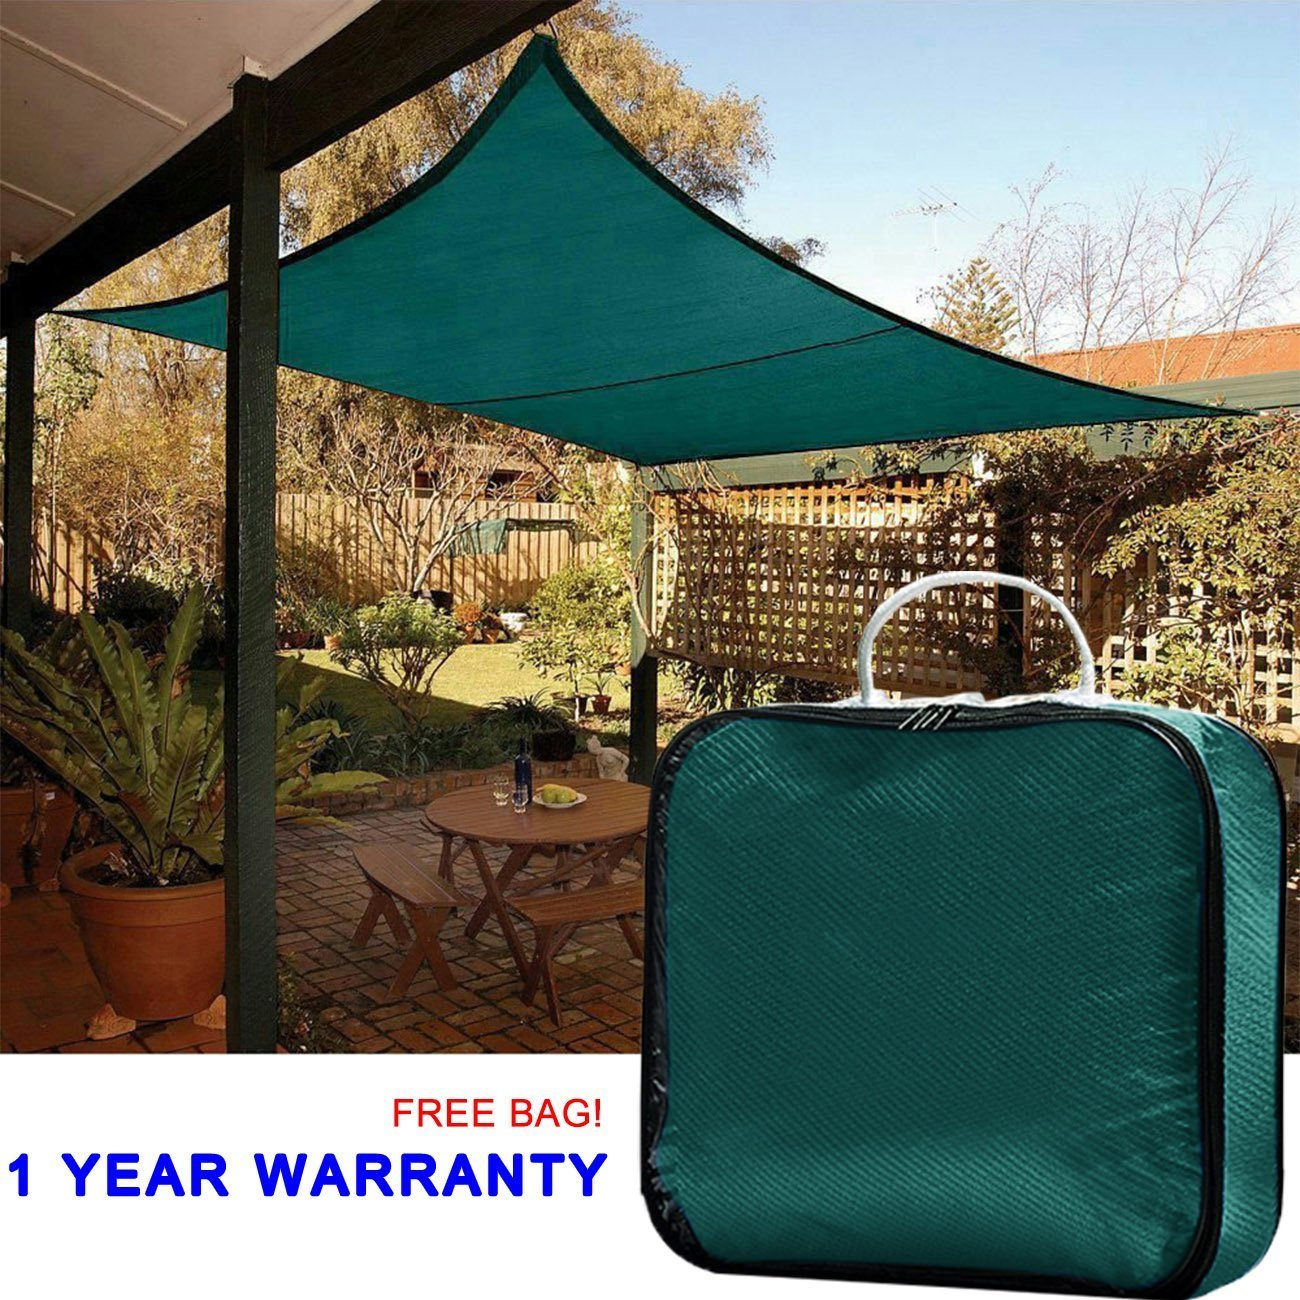 Quictent 185G HDPE 98% Uv-blocked 13 X 10 ft Rectangle Sun Sail Shade Canopy Top Outdoor Cover Patio Garden with Free Carry Bag Blue